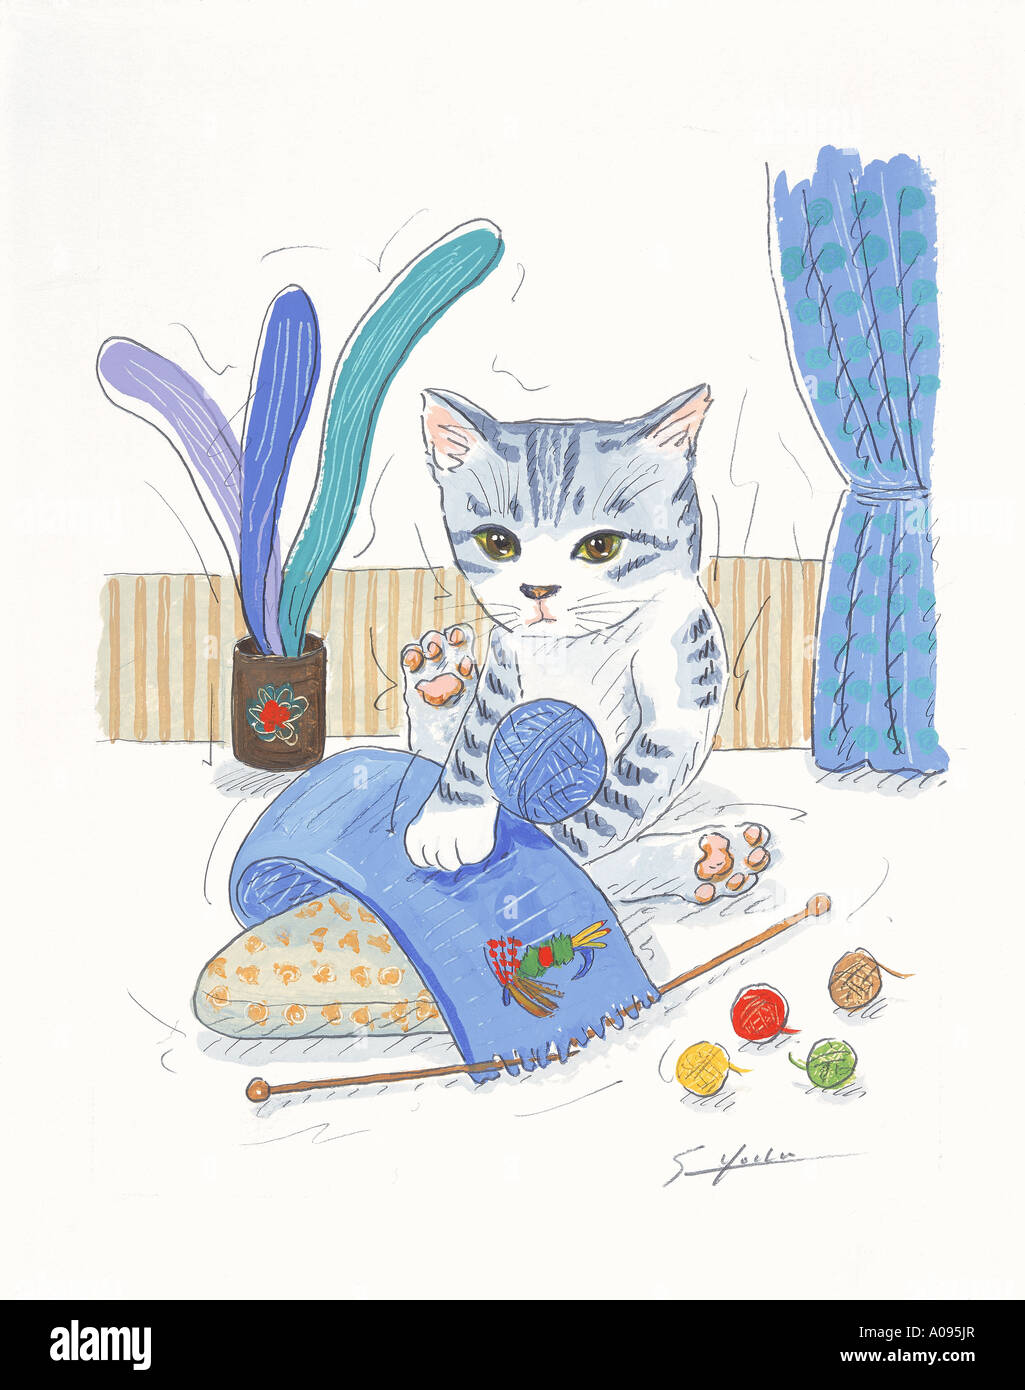 An illustration of a cat Stock Photo